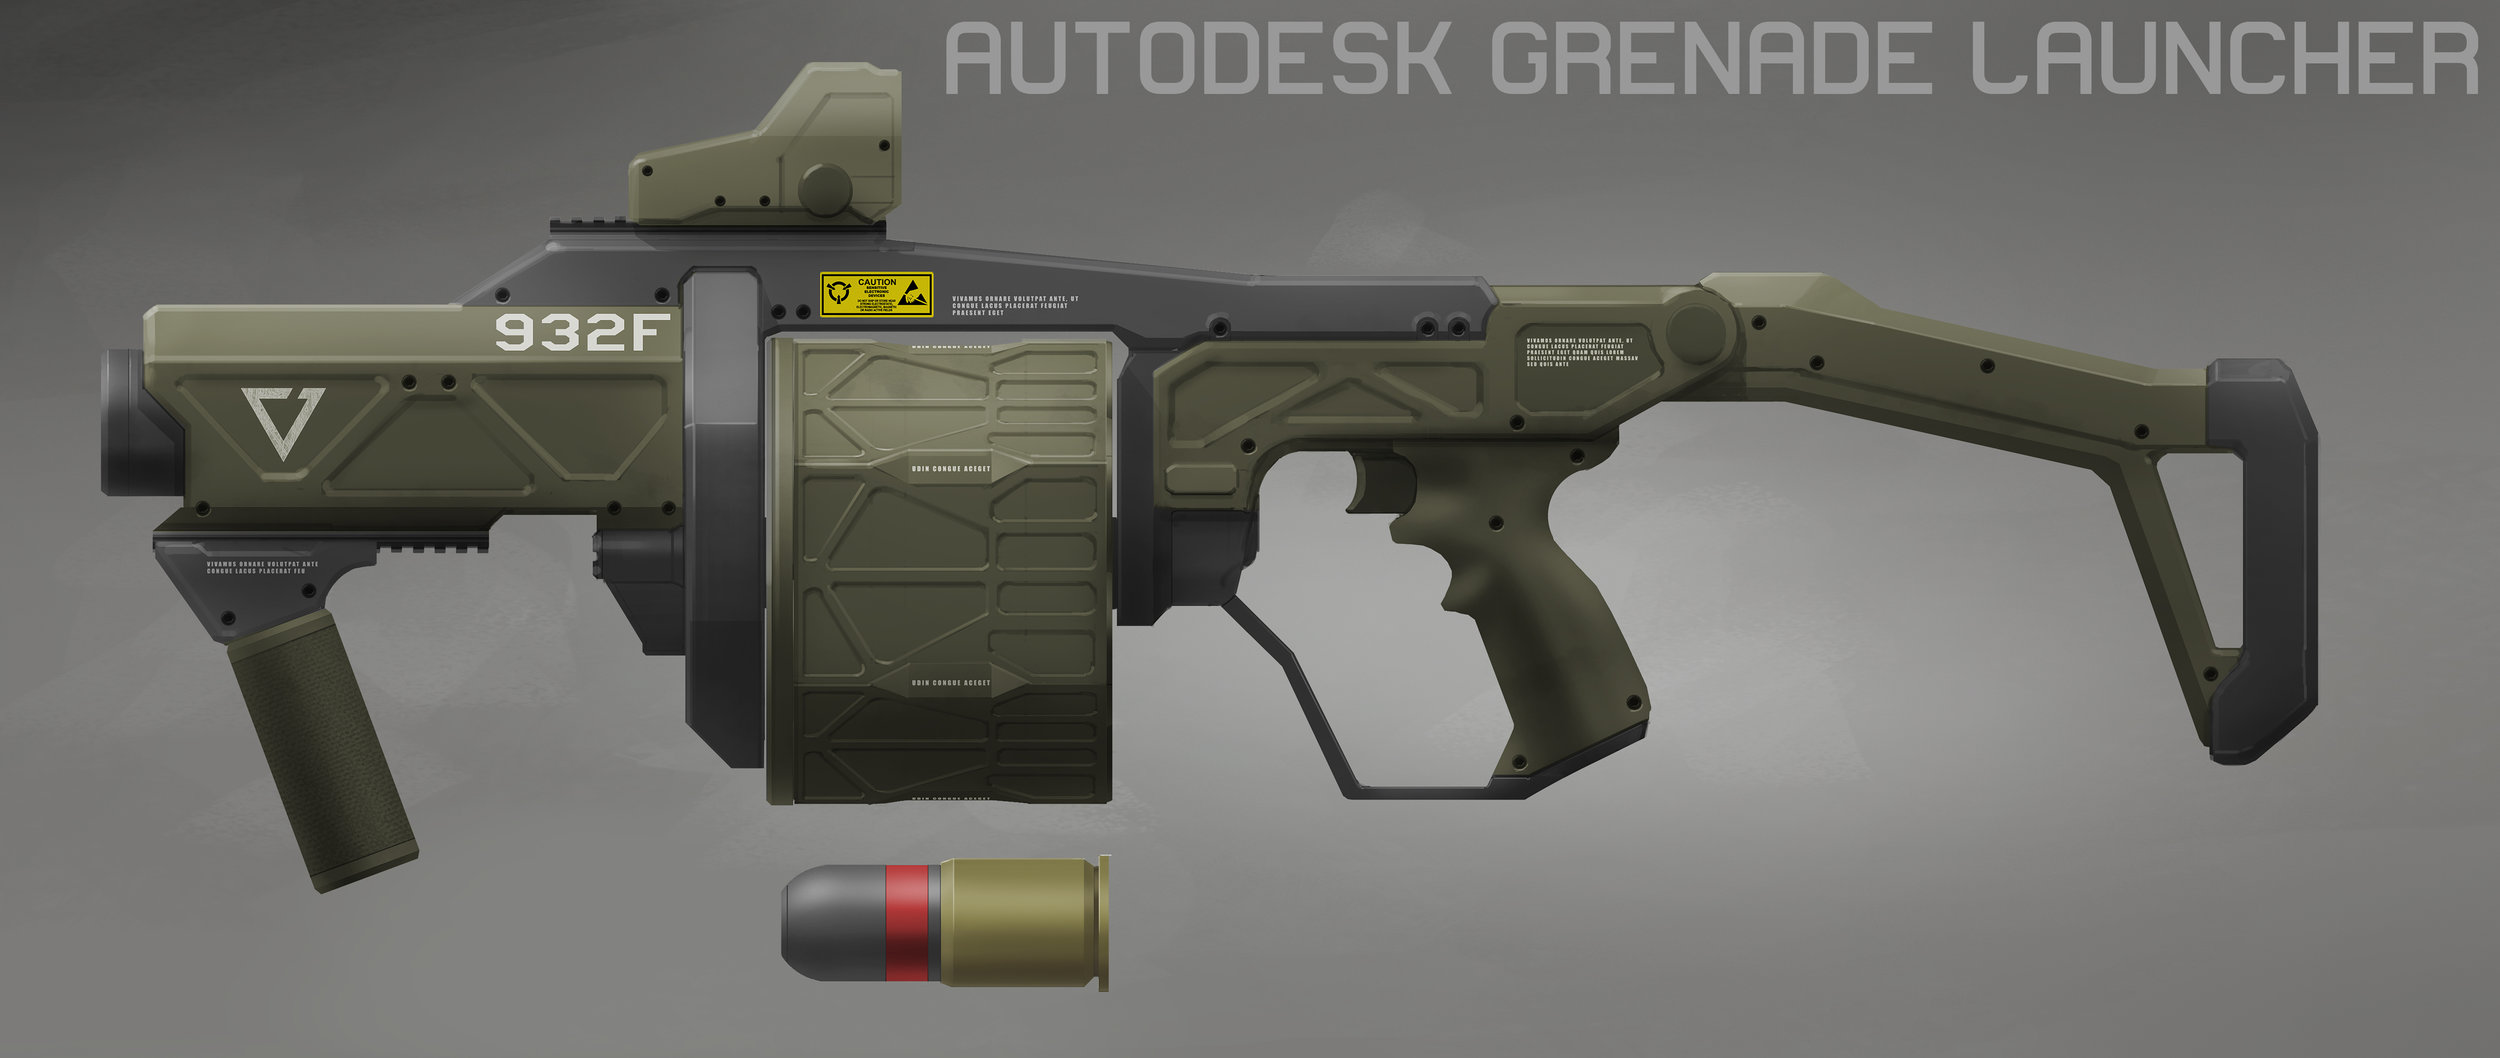 Autodesk_Grenade_Launcher_SIDE_VIEW.jpg